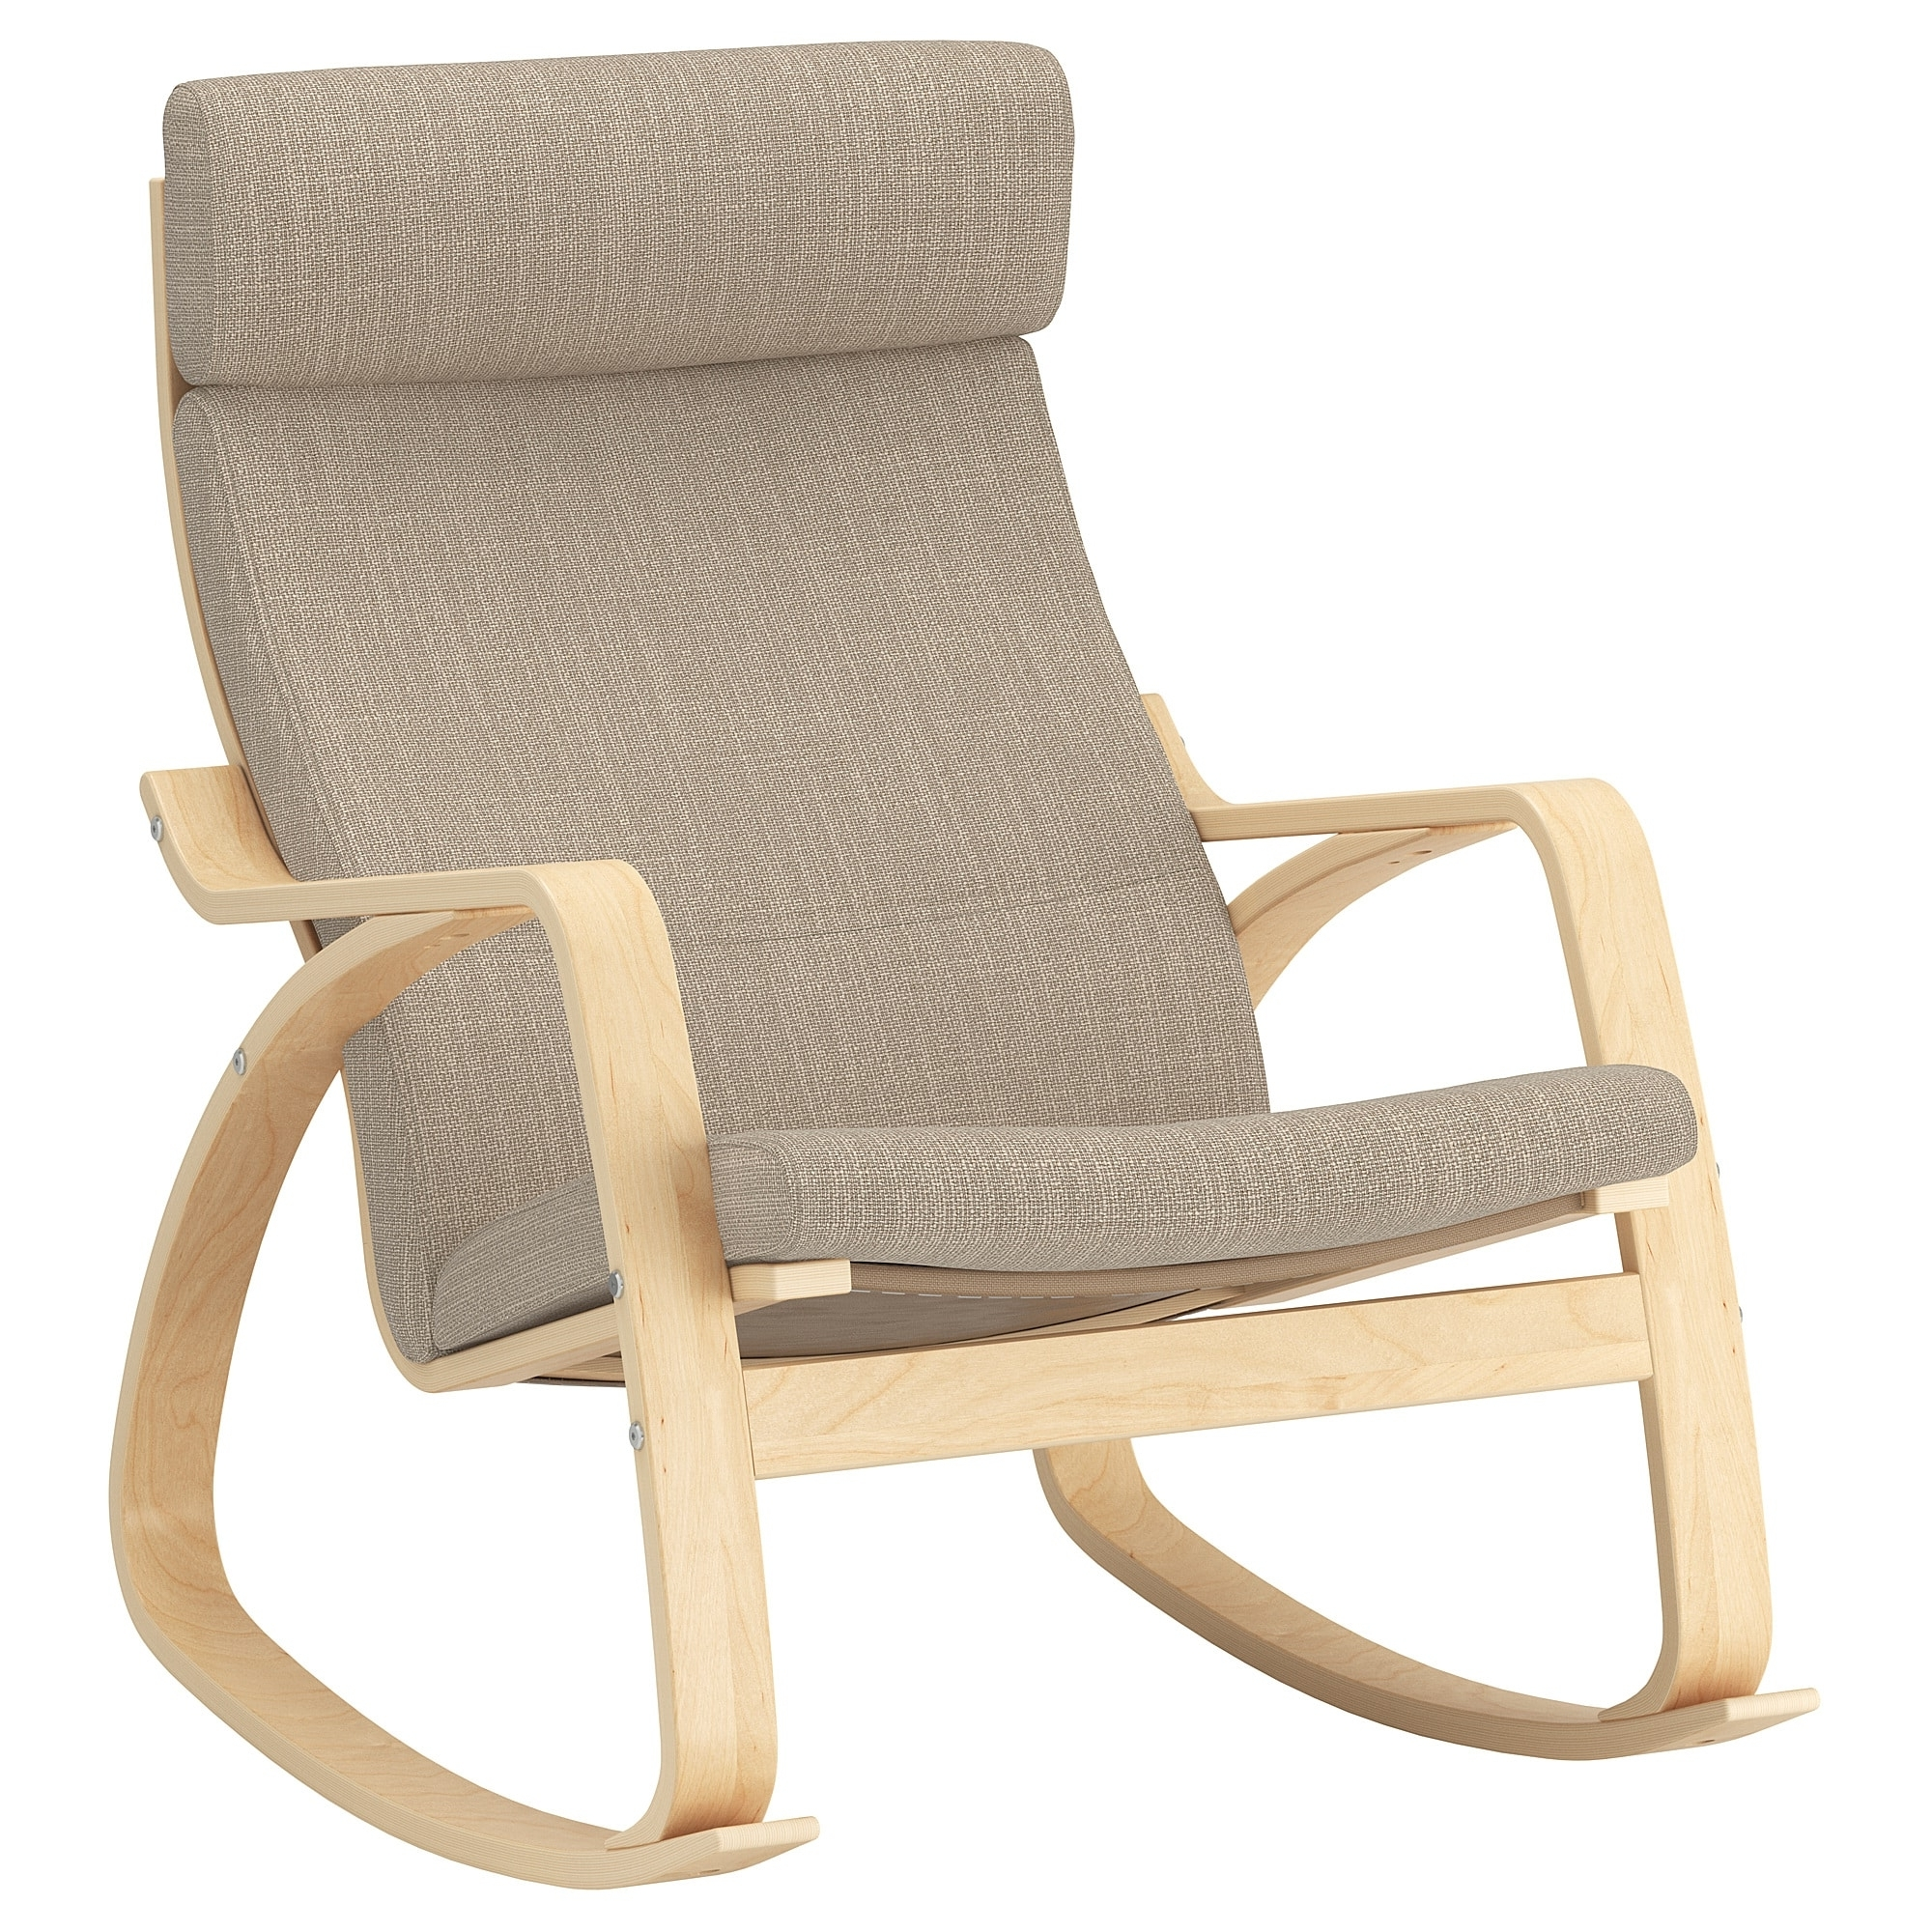 Popular Poäng Rocking Chair Birch Veneer/hillared Beige – Ikea Within Ikea Rocking Chairs (View 14 of 15)